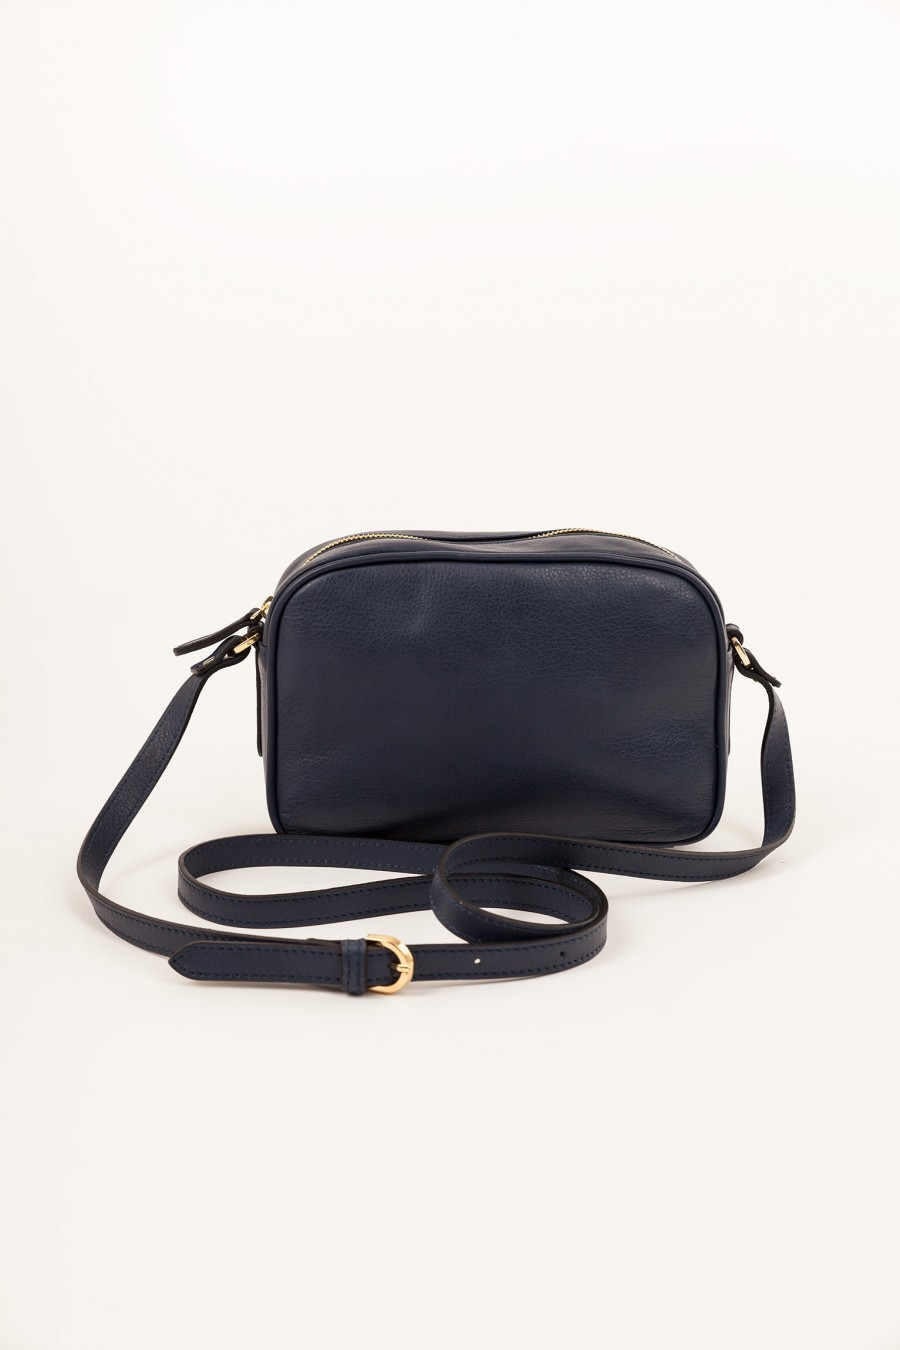 Shoulder bag real leather